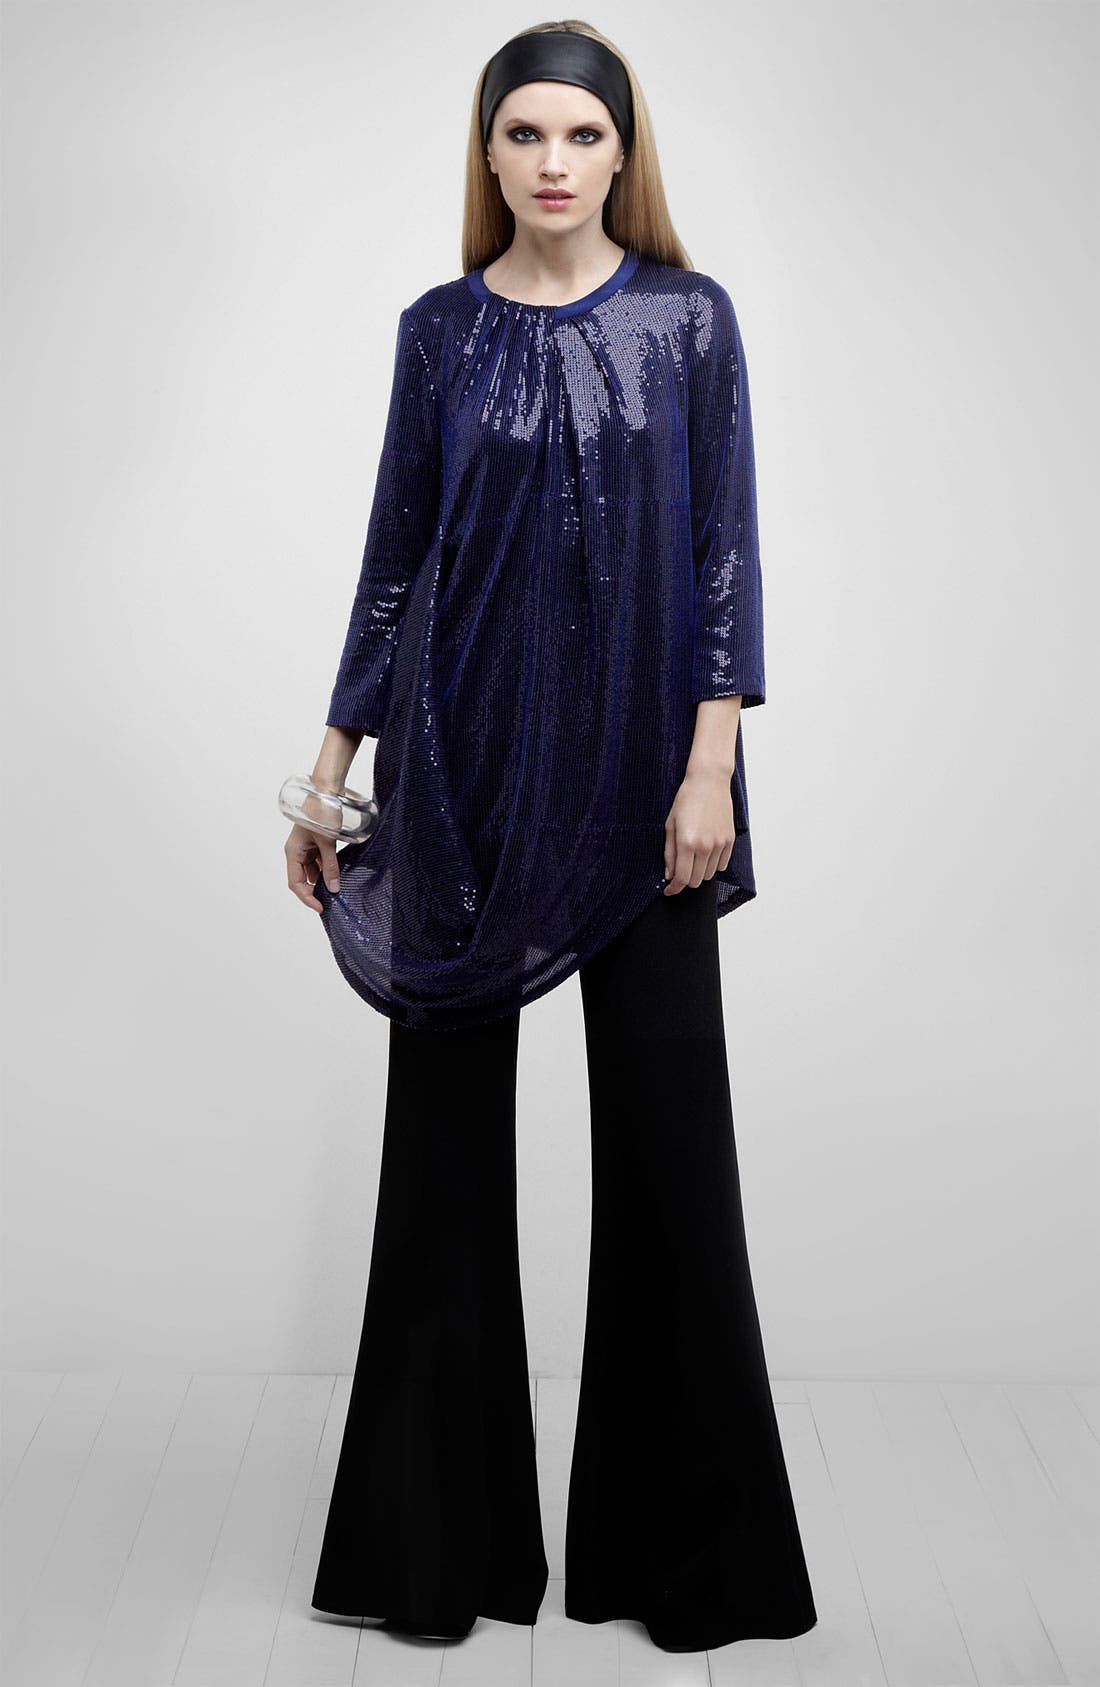 Main Image - Lafayette 148 New York Tunic & Bell Bottom Pants